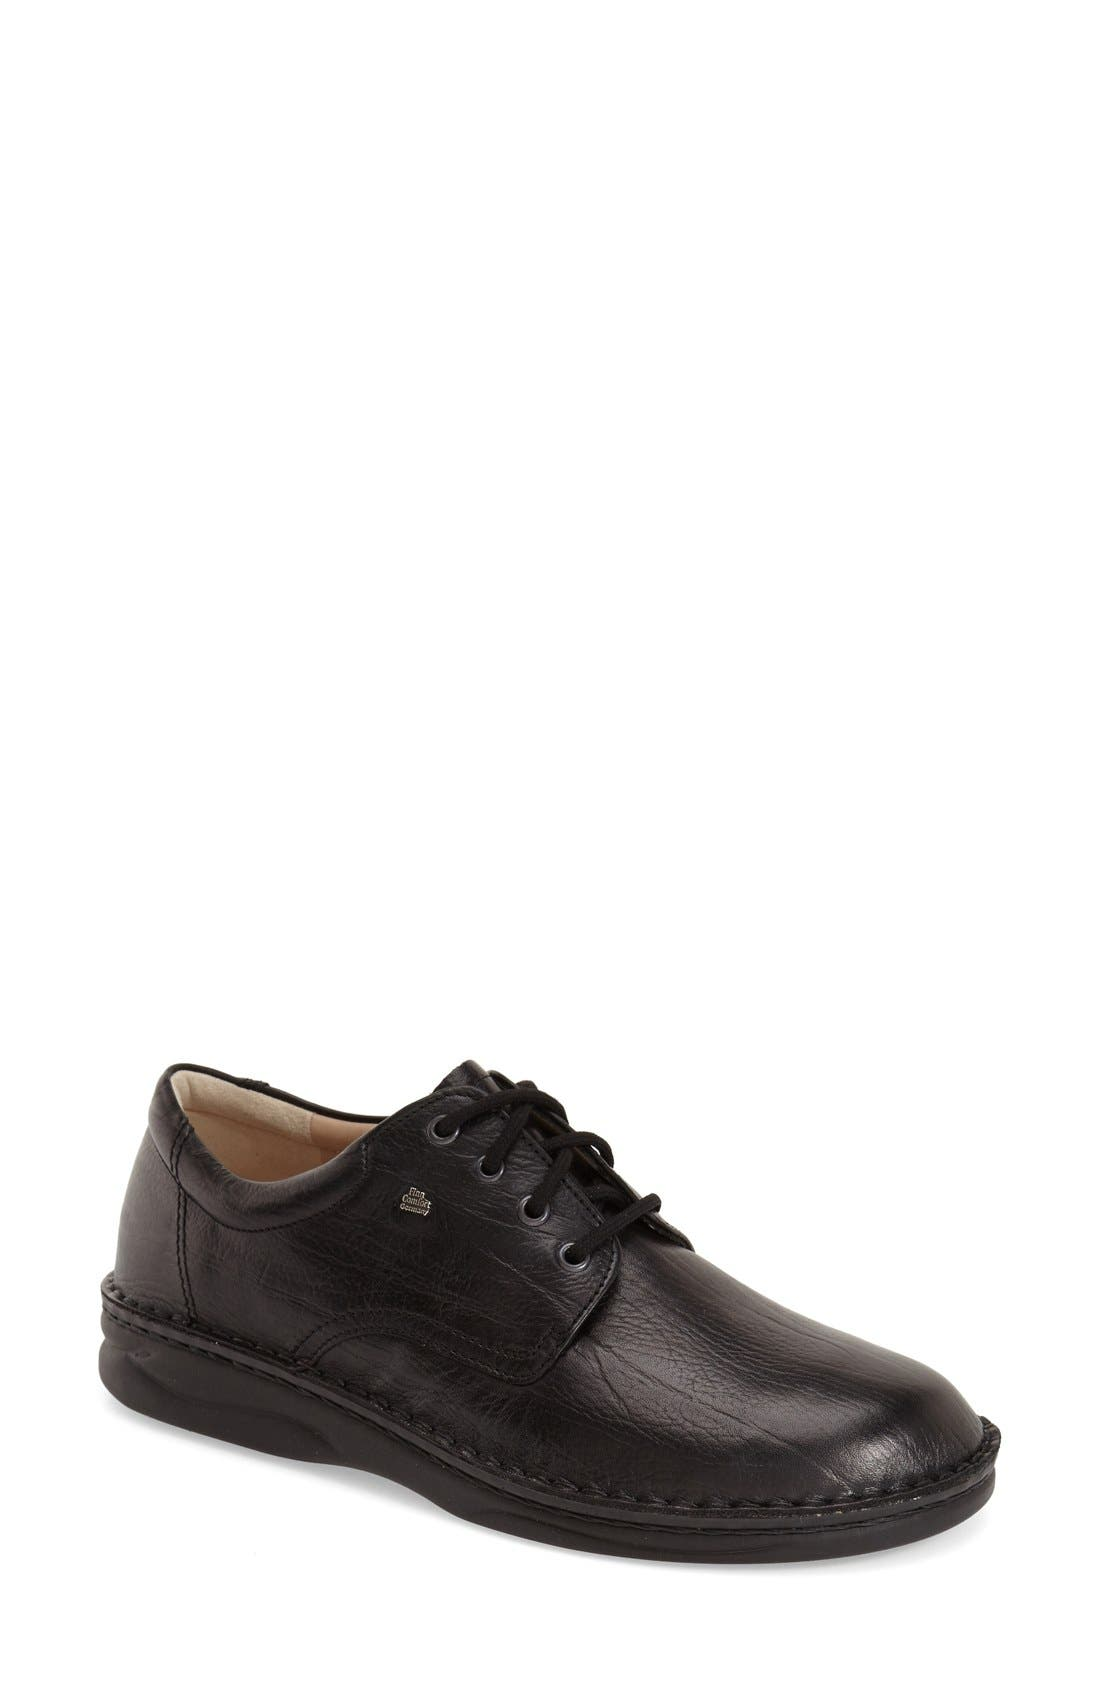 'Metz' Oxford,                         Main,                         color, Black Leather